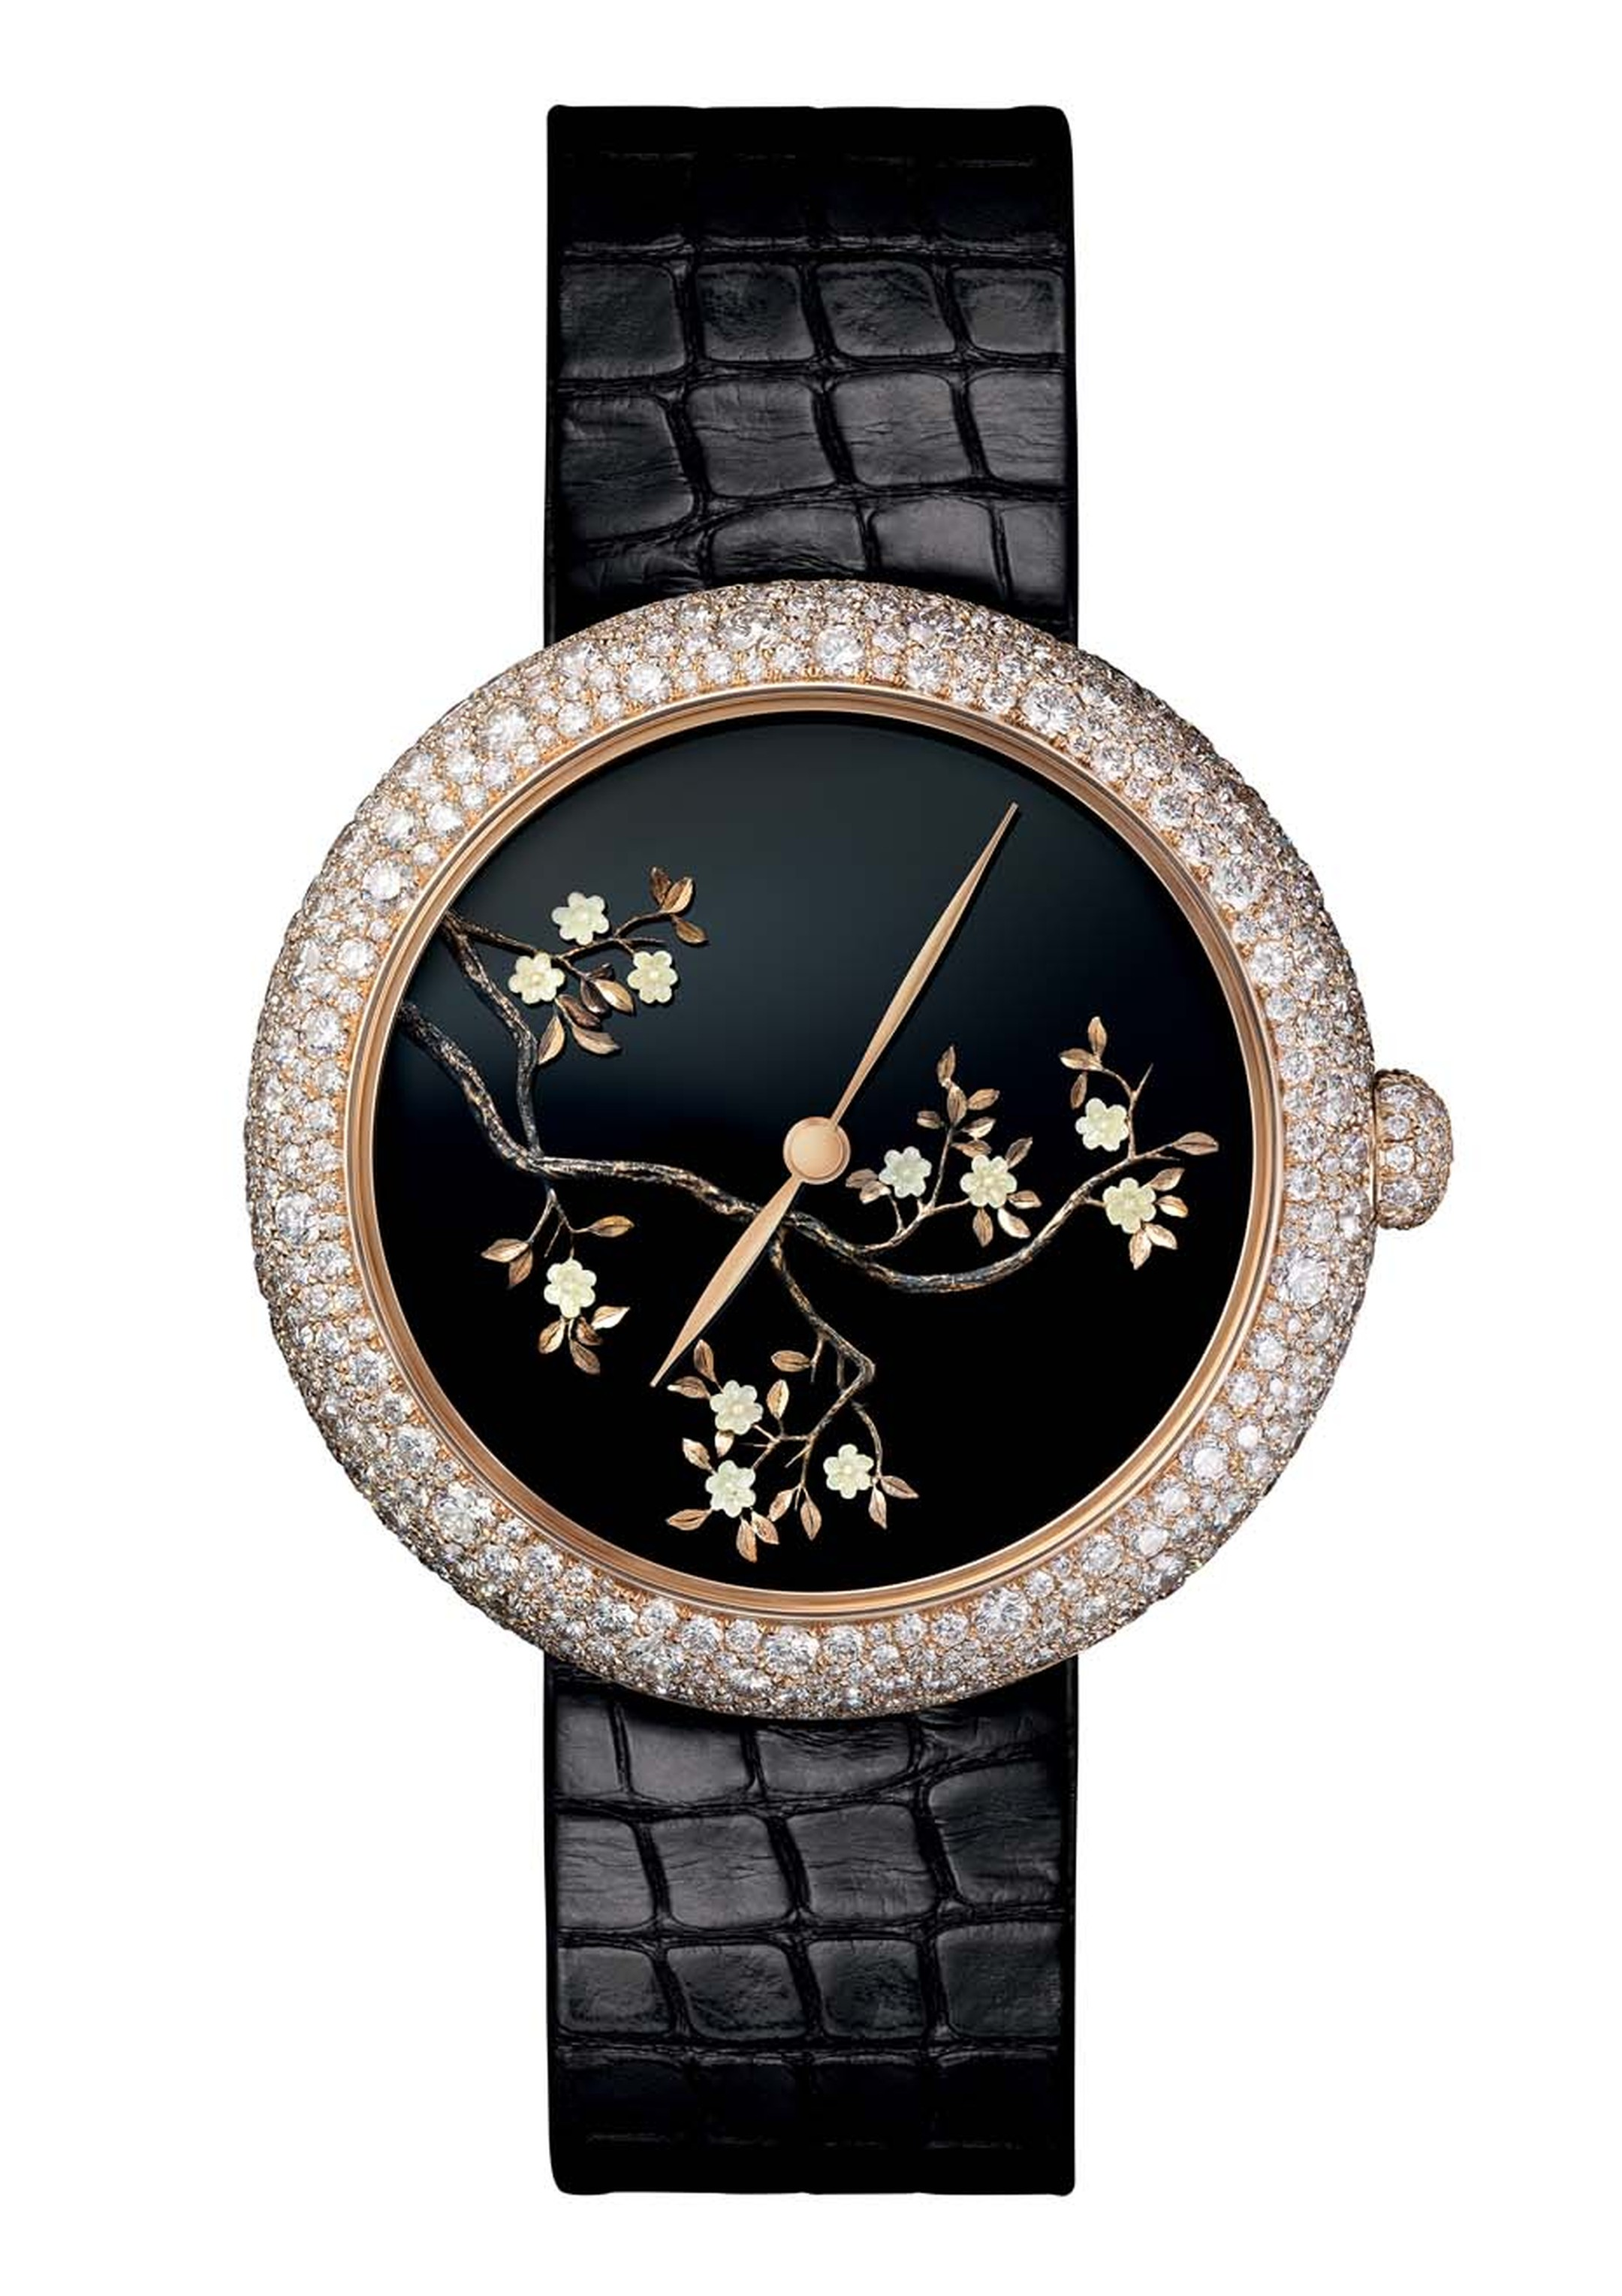 Chanel watches brings yet more insight into the personal spaces of Coco Chanel with this beige gold Coromandel inspired Mademoiselle Privé Décor ladies' watch featuring a floral motif, similar to those adorning the Chinese screens that graced the designer